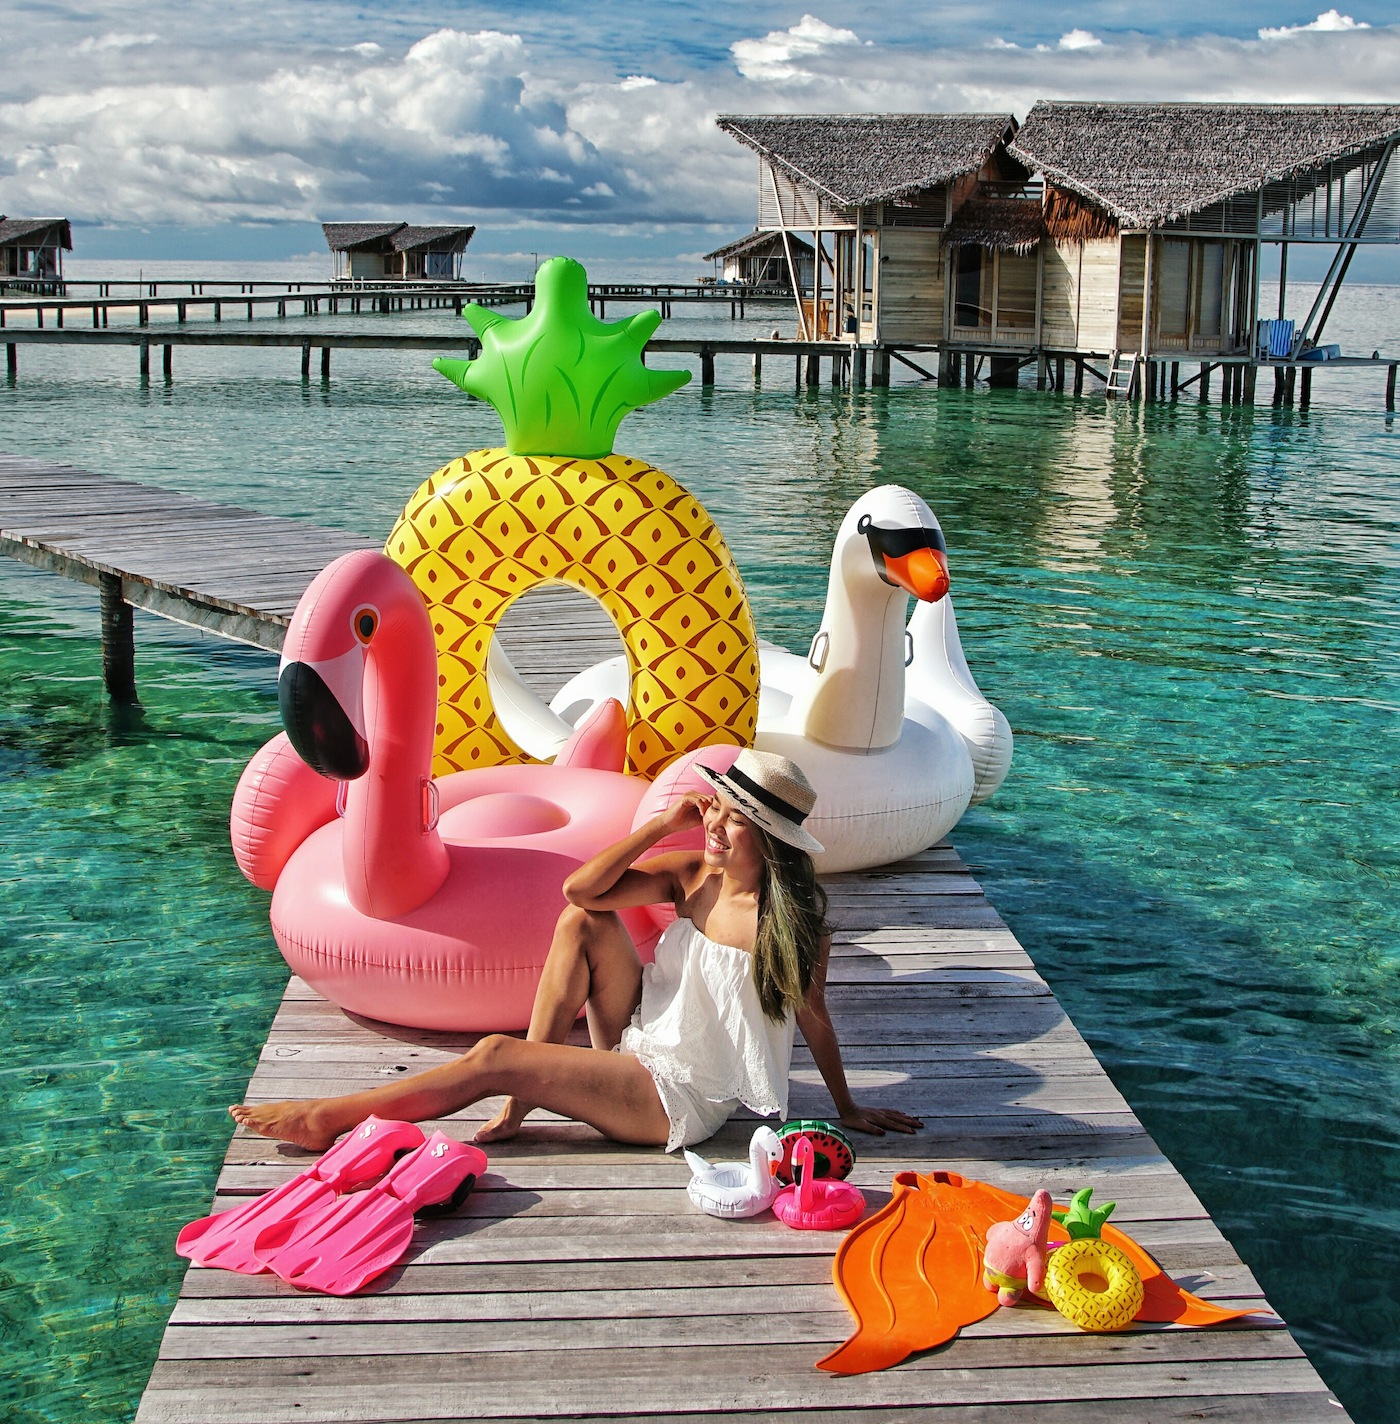 """<a href=""""http://mataram.info/things-to-do-in-bali/visitindonesia-banda-marine-life-the-paradise-of-diving-topographic-point-inward-fundamental-maluku/"""">Indonesia</a>best destinations : Last Prepared As Well As Play: Stuffs For Locomote"""